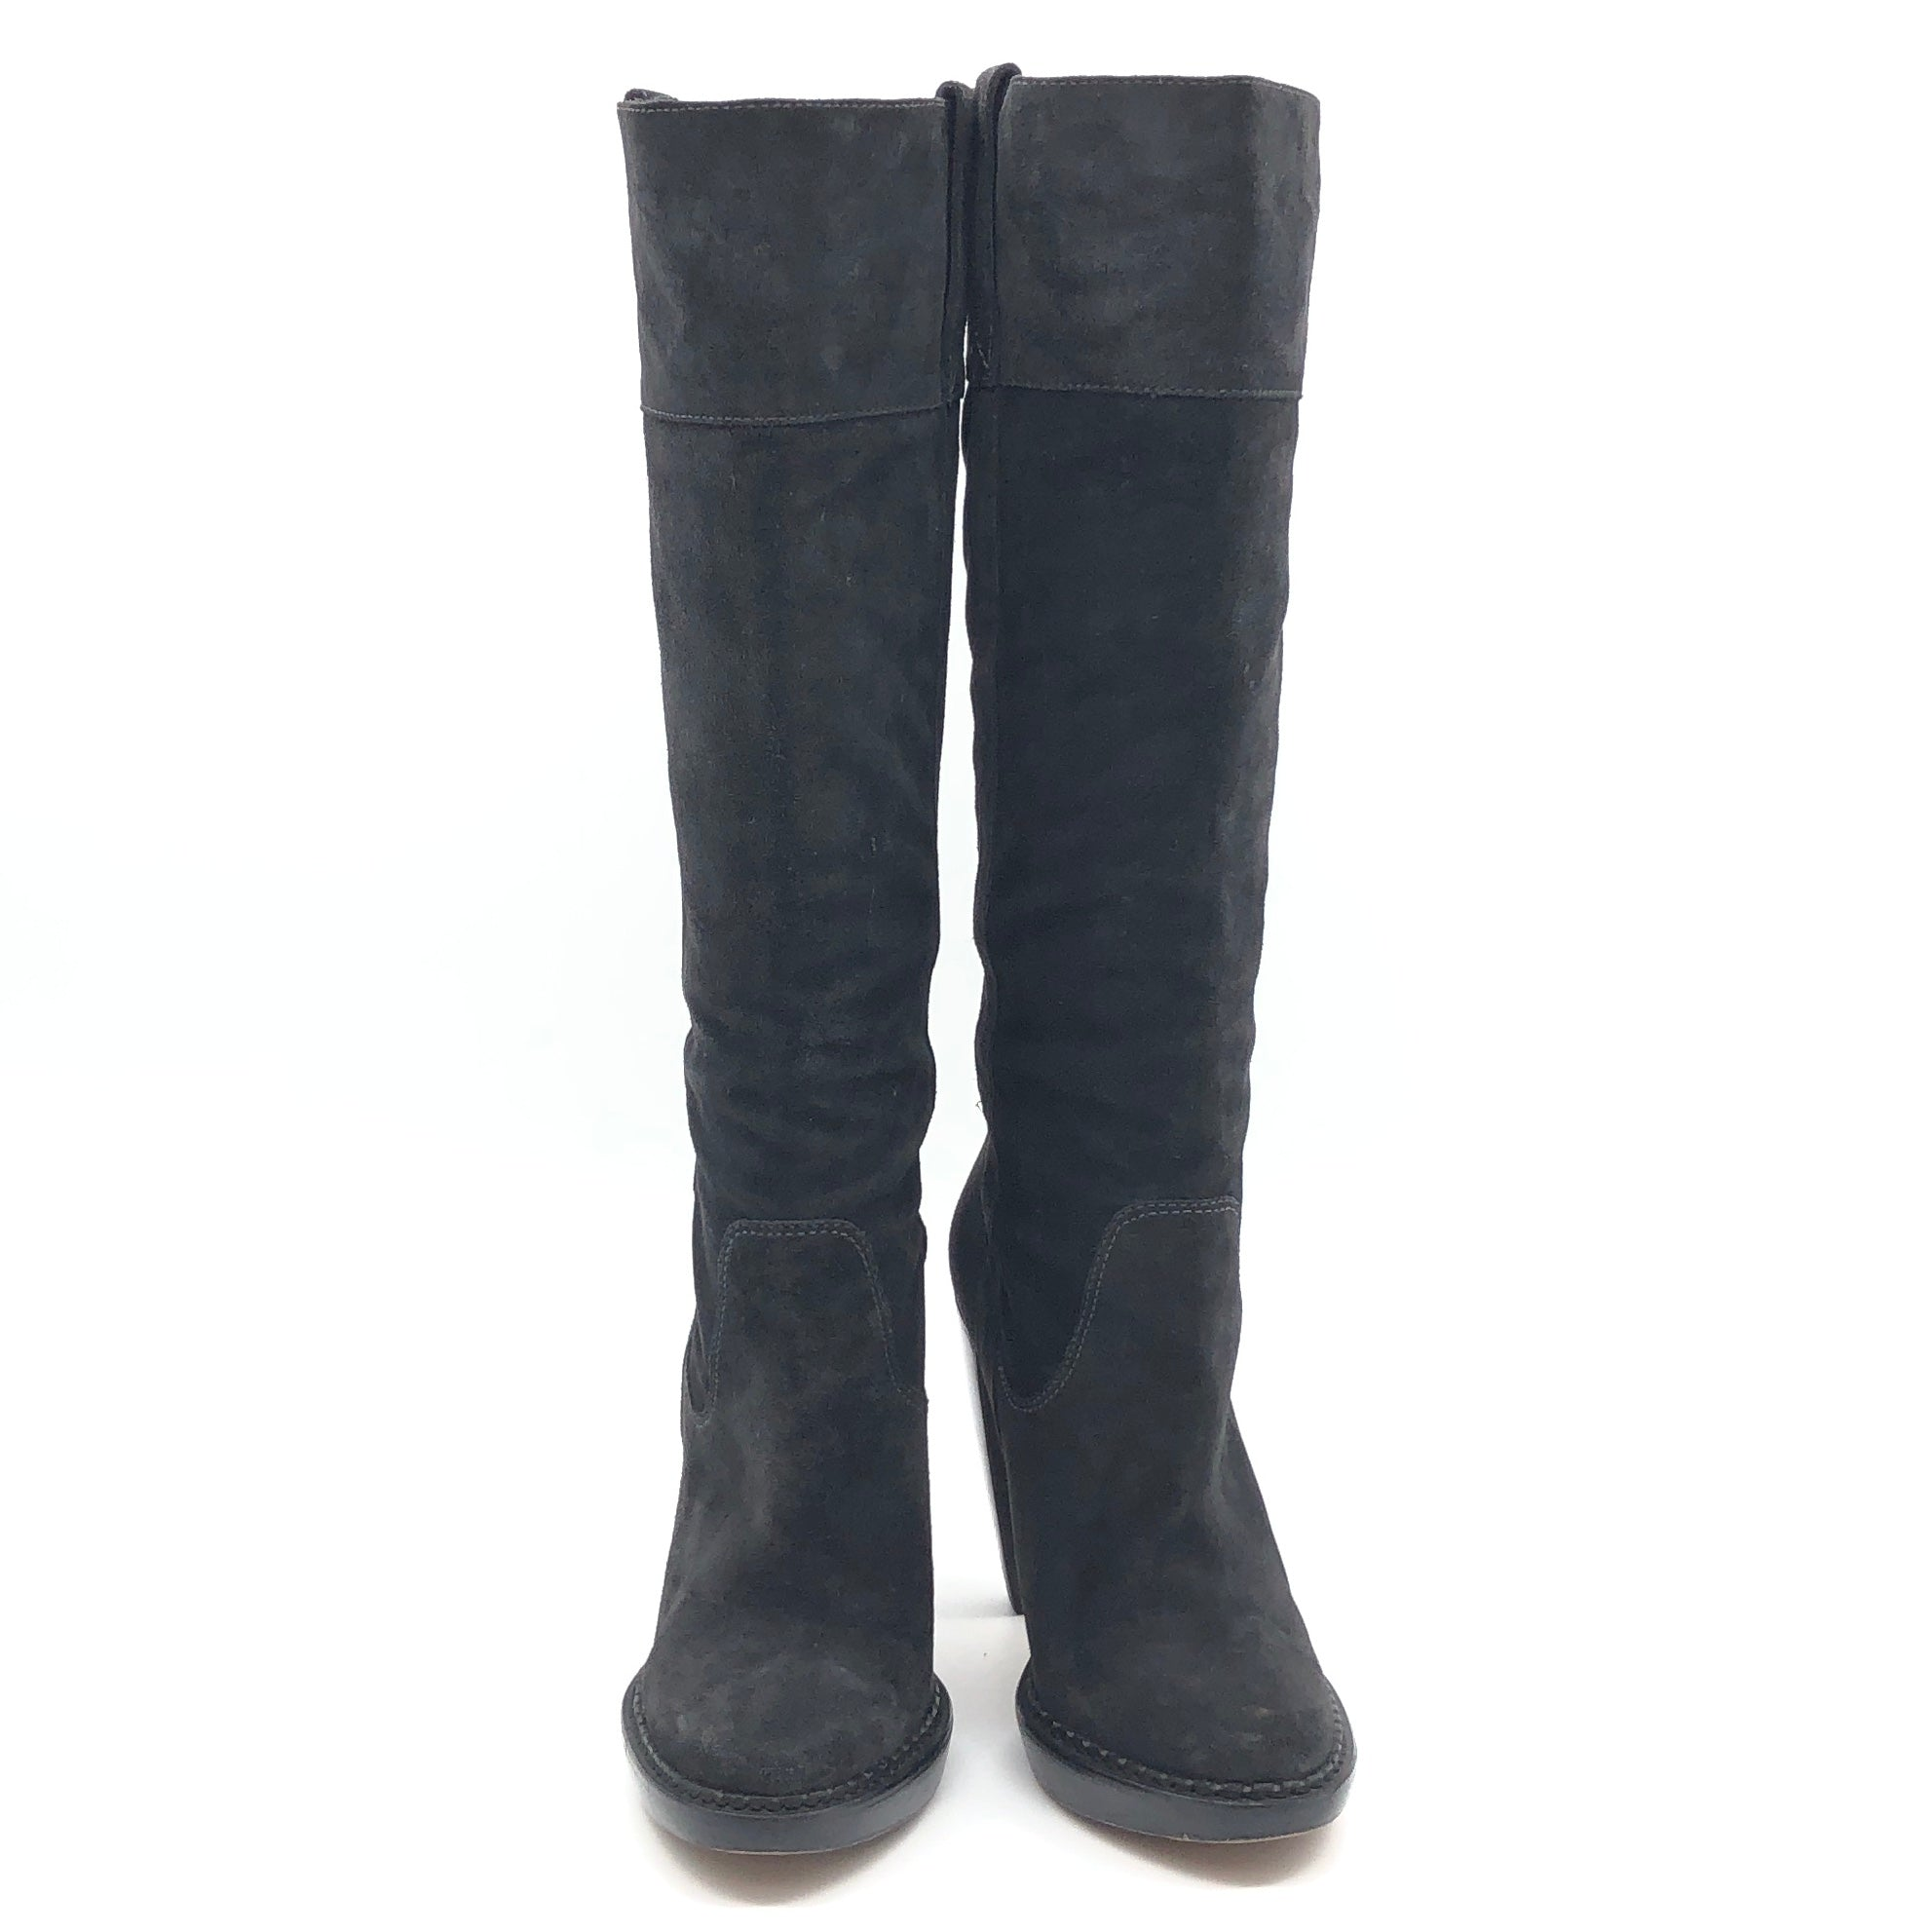 "Photo #1 - BRAND: MICHAEL KORS <BR>STYLE: BOOTS KNEE <BR>COLOR: BLACK <BR>SIZE: 10 <BR>SKU: 262-262101-2081<BR>CALF OPENING CIRCUMFERENCE: 16.5"" <BR>LOWER CIRCUMFERENCE: 12.5""<BR>NARROW TOES • GENTLE WEAR • 5"" HEEL HEIGHT • 15"" BOOTS HEIGHT •"